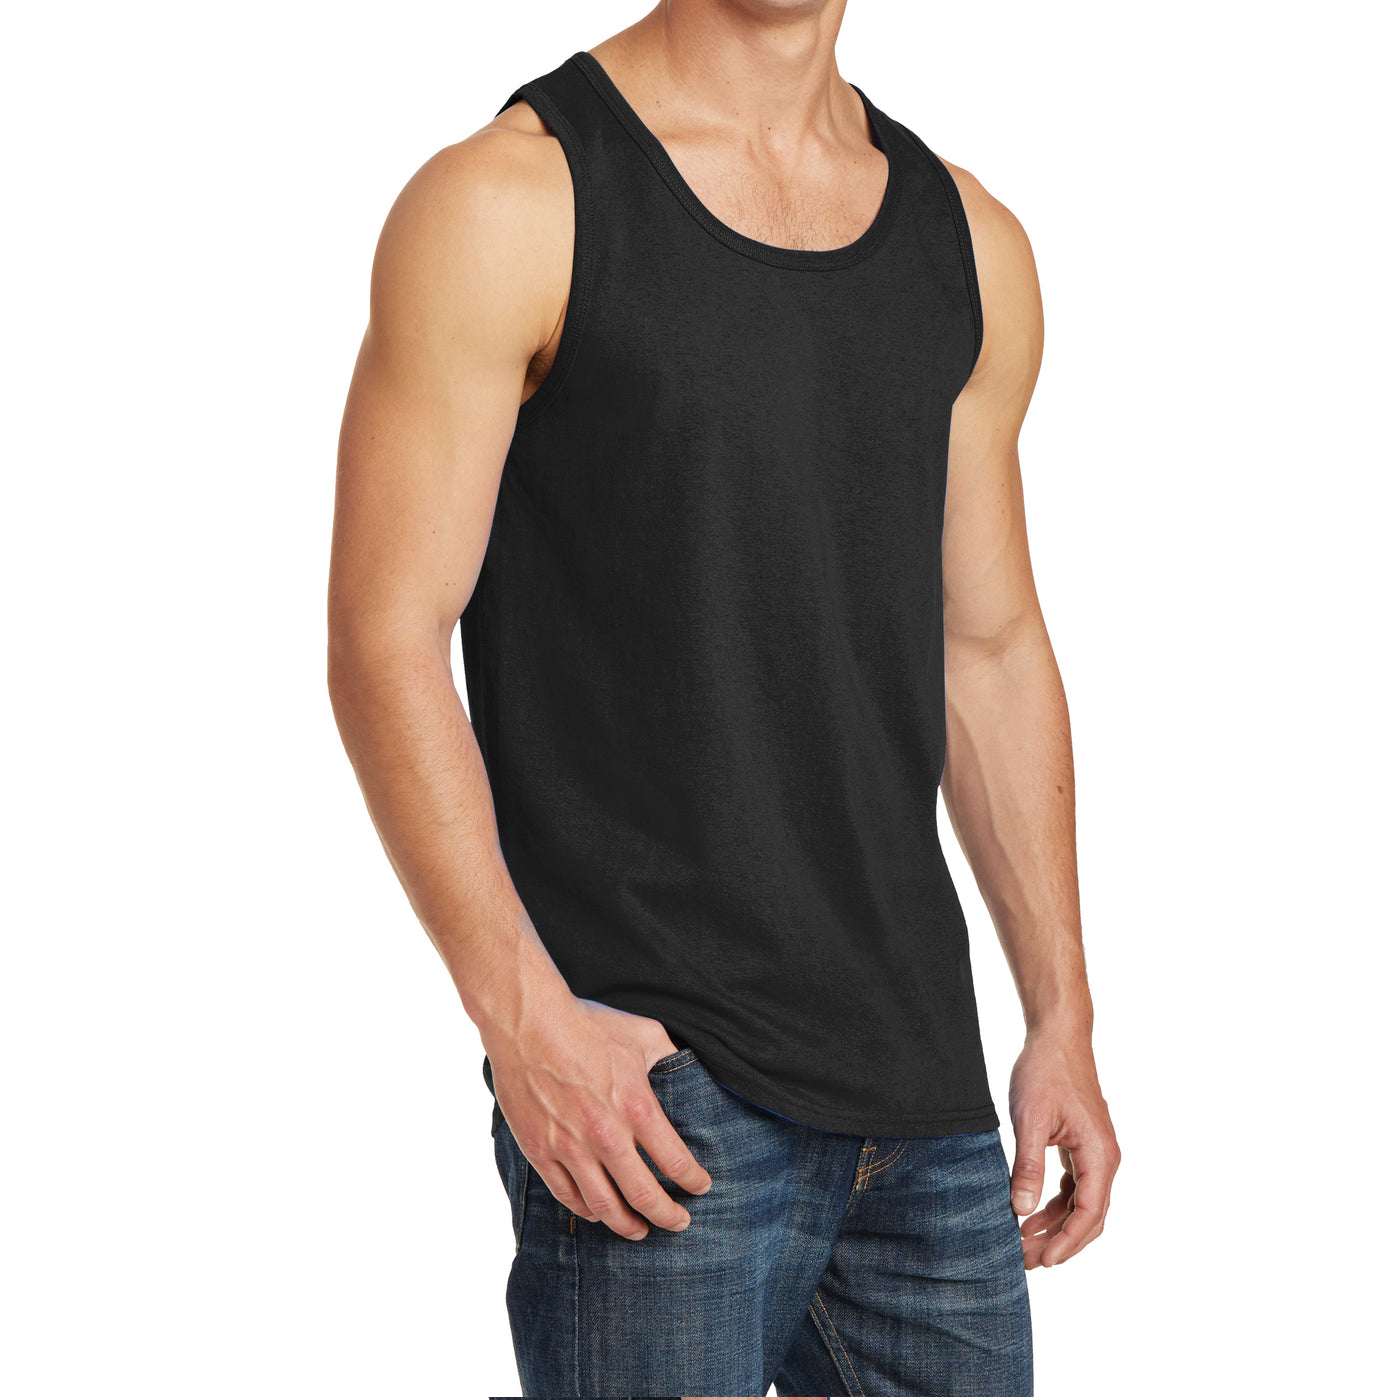 Men's Core Cotton Tank Top - Jet Black - Side